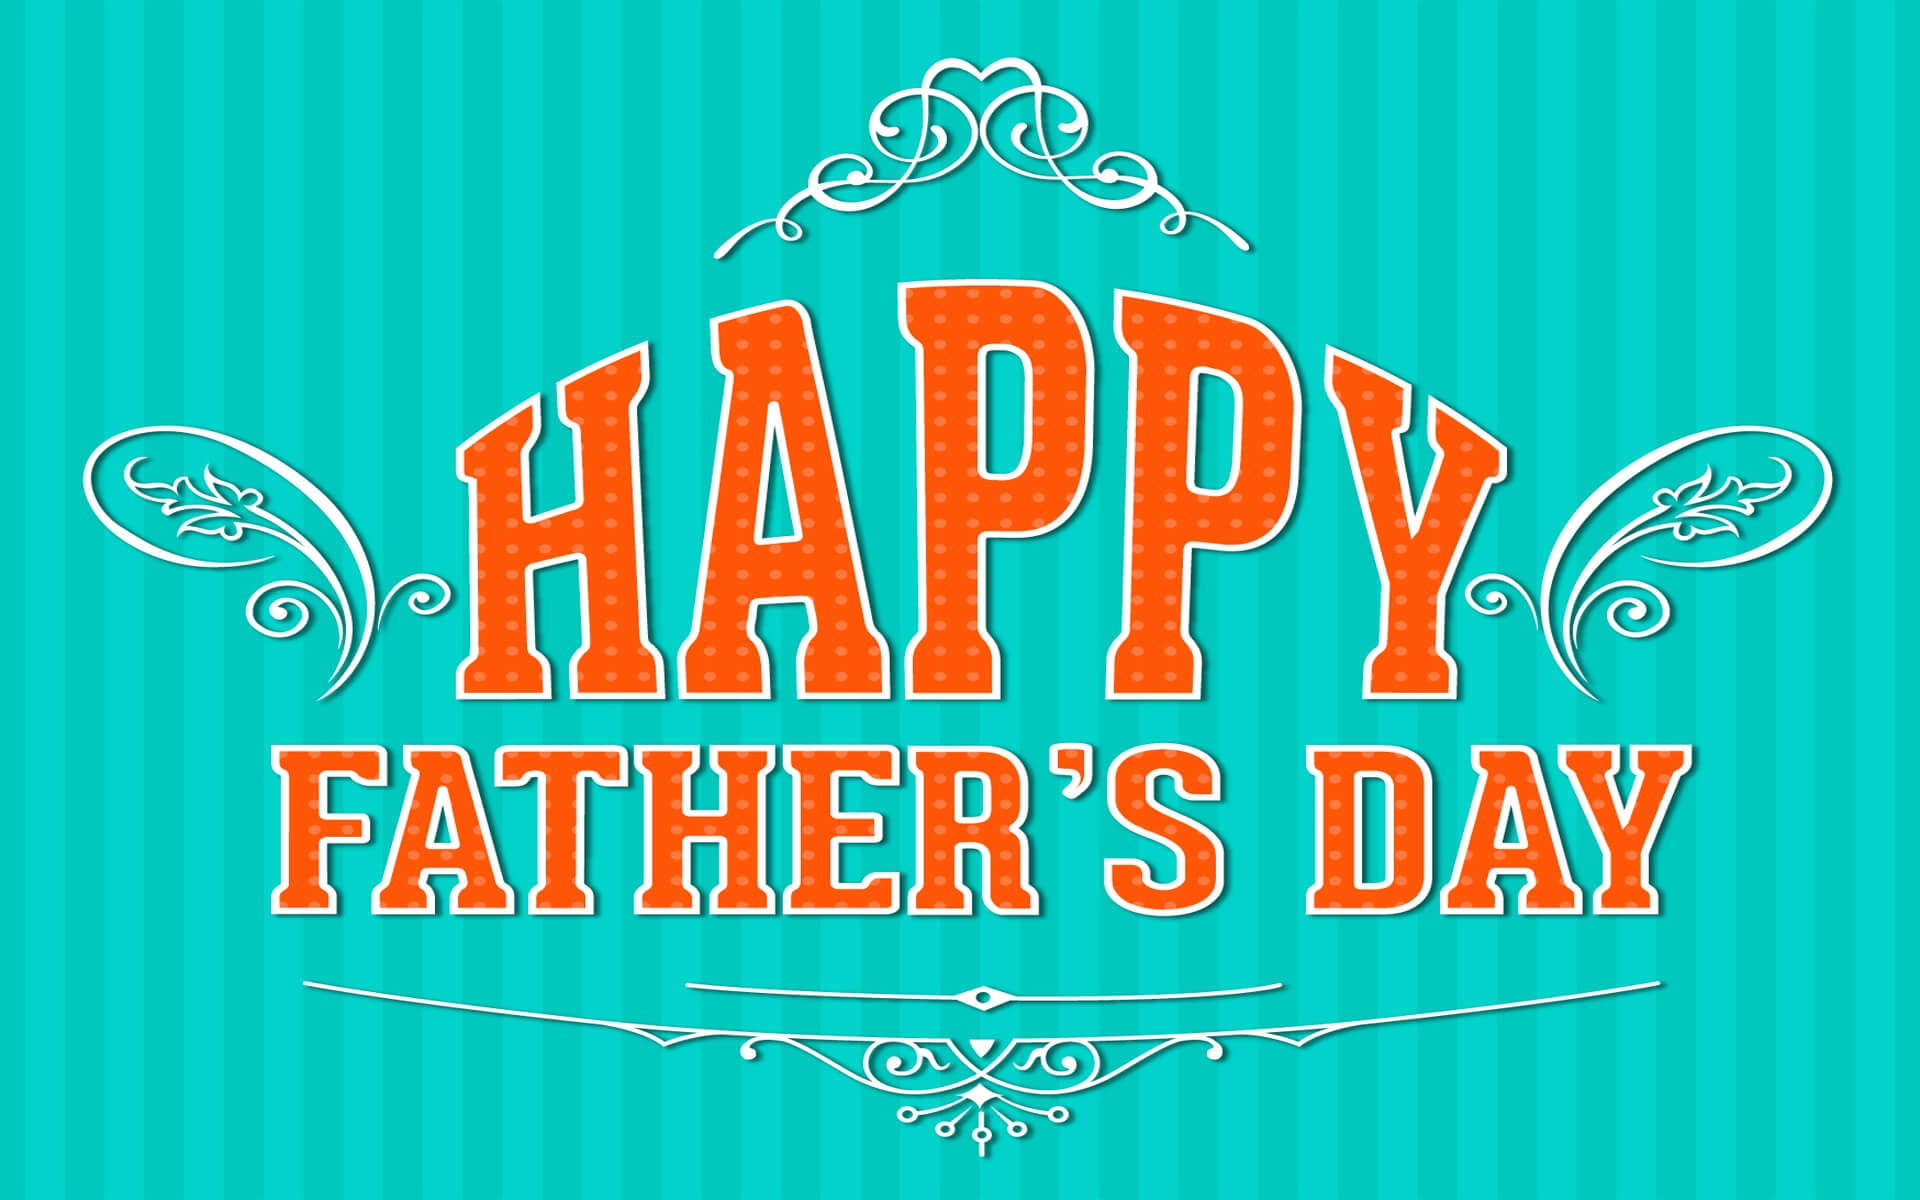 Happy Father's Day 2018